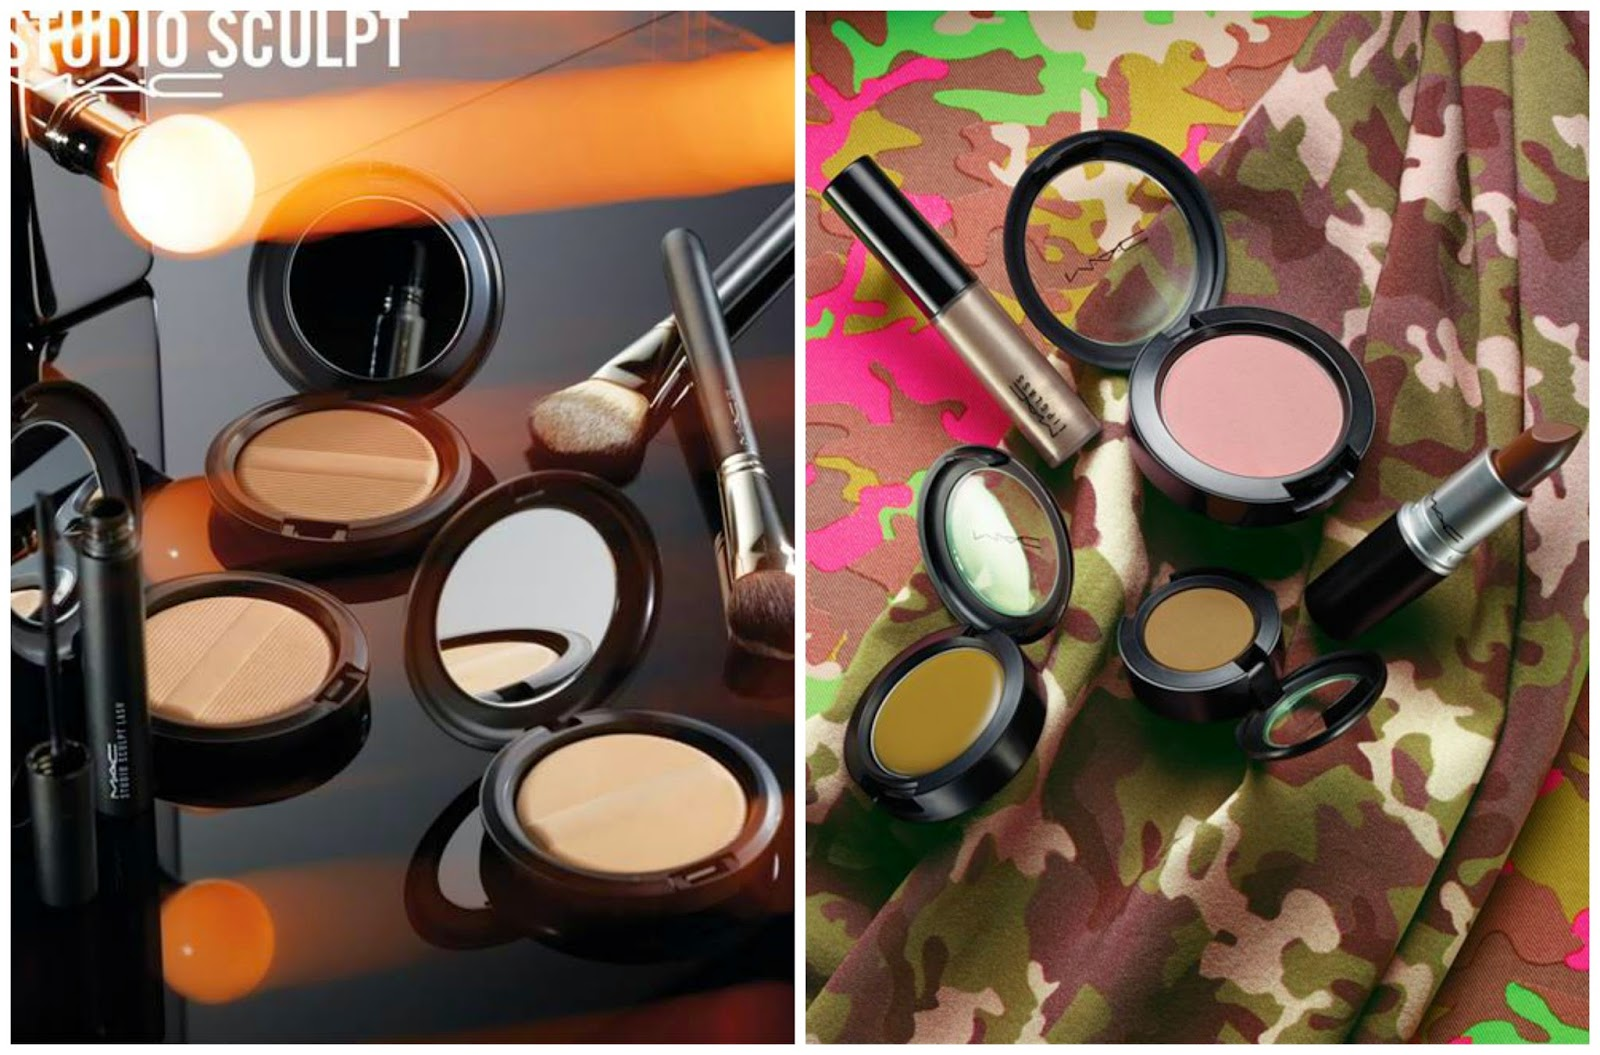 Upcoming MAC Collections - Autumn/Fall 2014